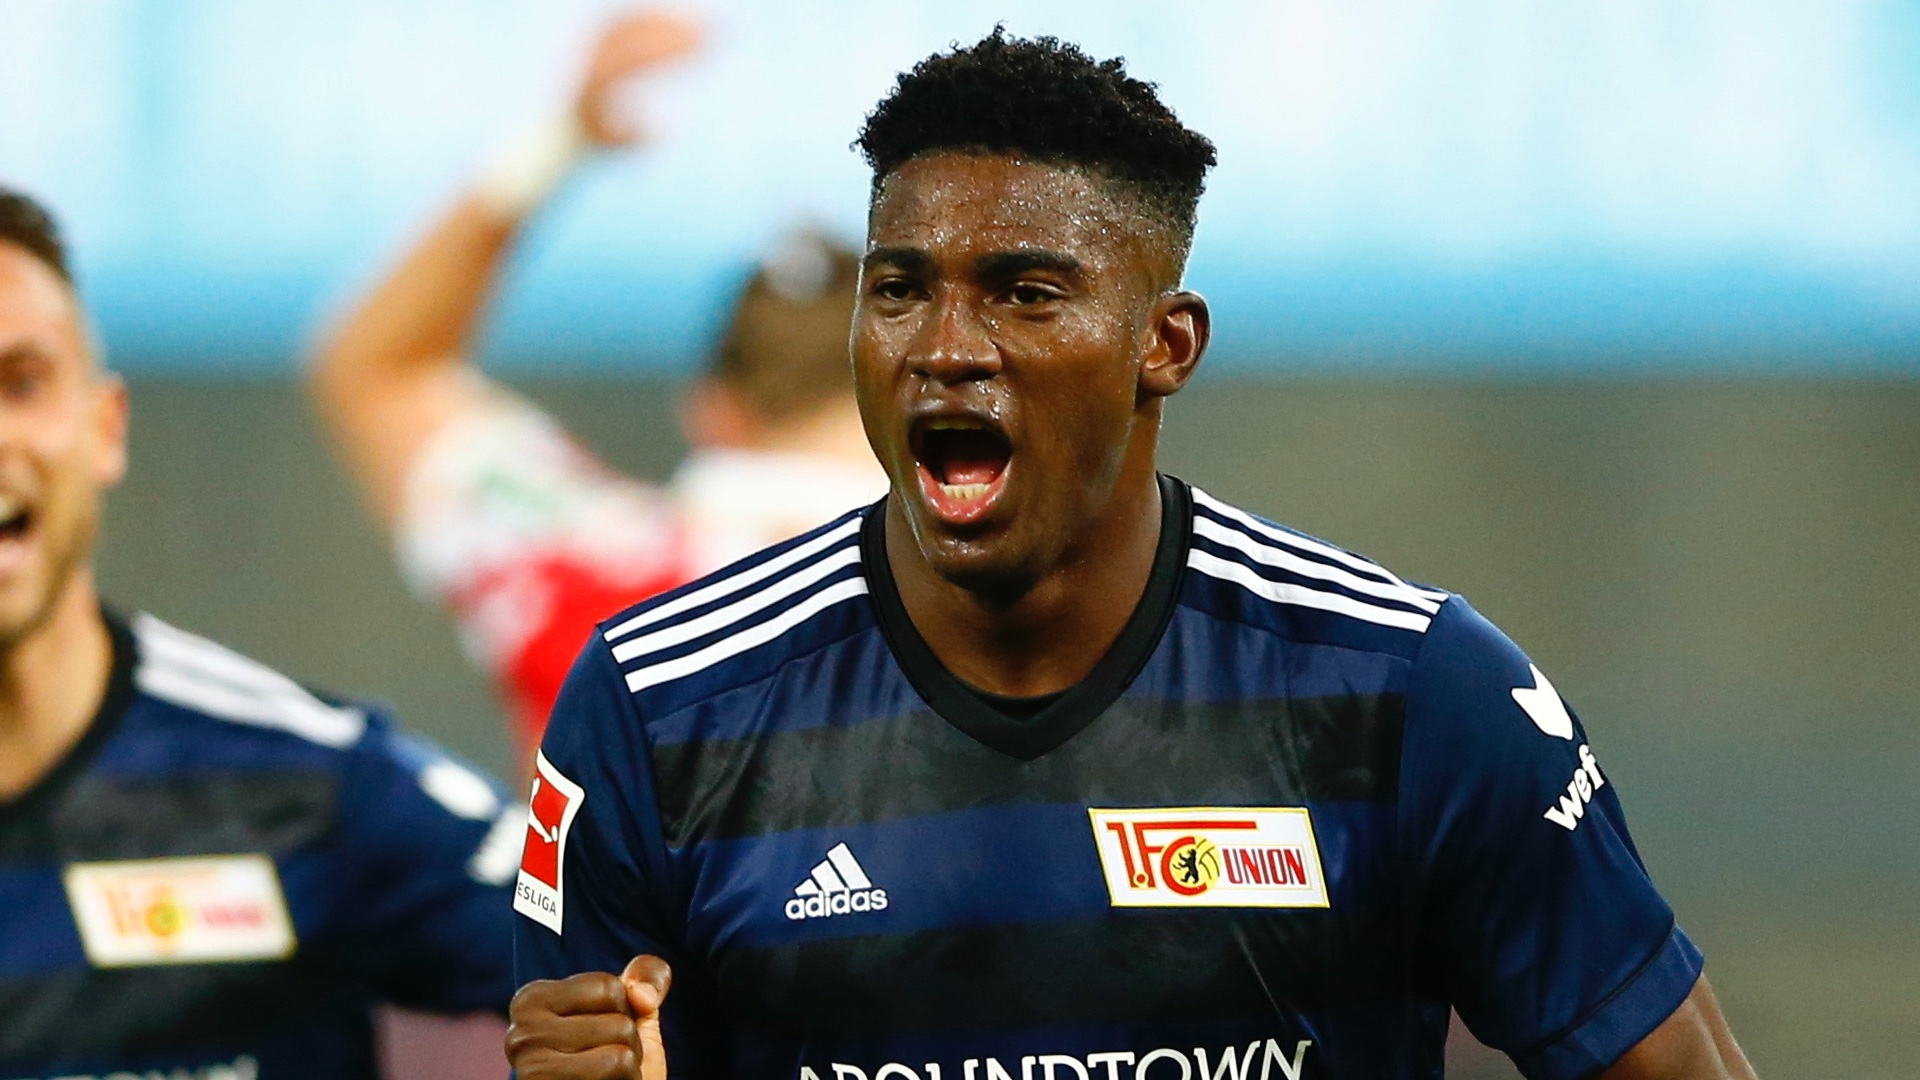 Ex-Liverpool striker Awoniyi dazzles in Europa Conference League with brace and assist